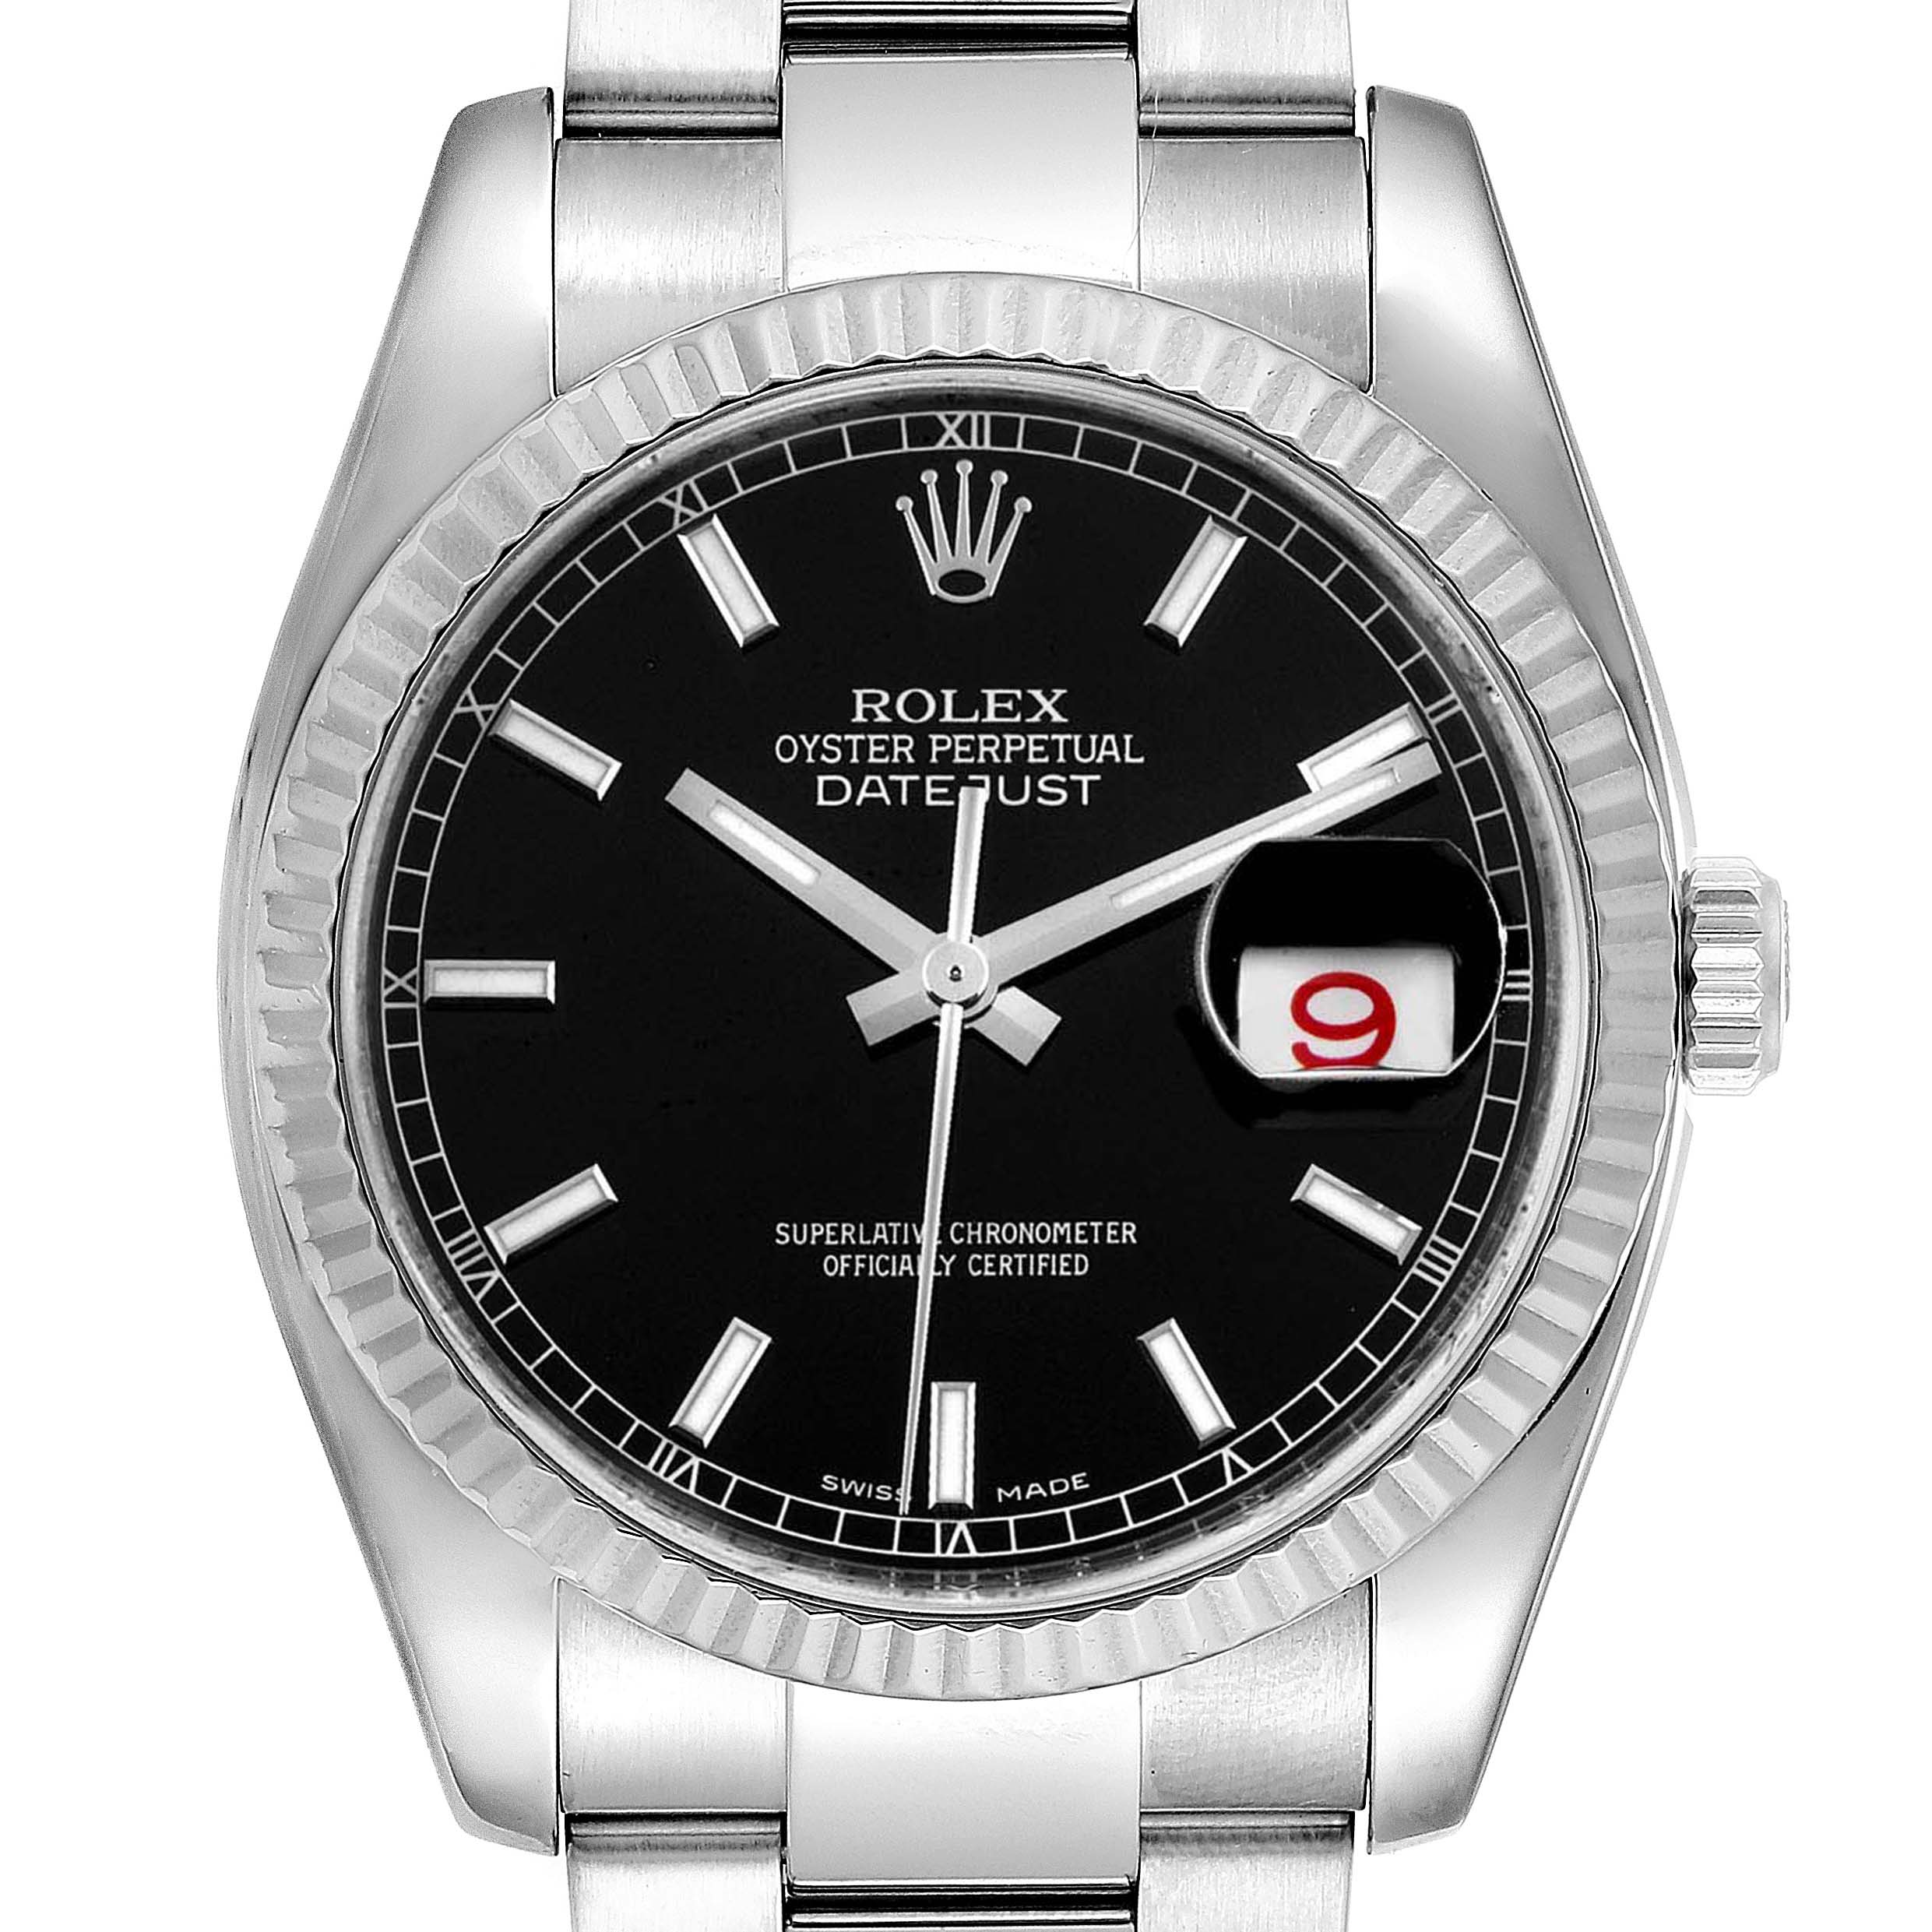 Photo of Rolex Datejust Steel White Gold Black Dial Mens Watch 116234 Box Card